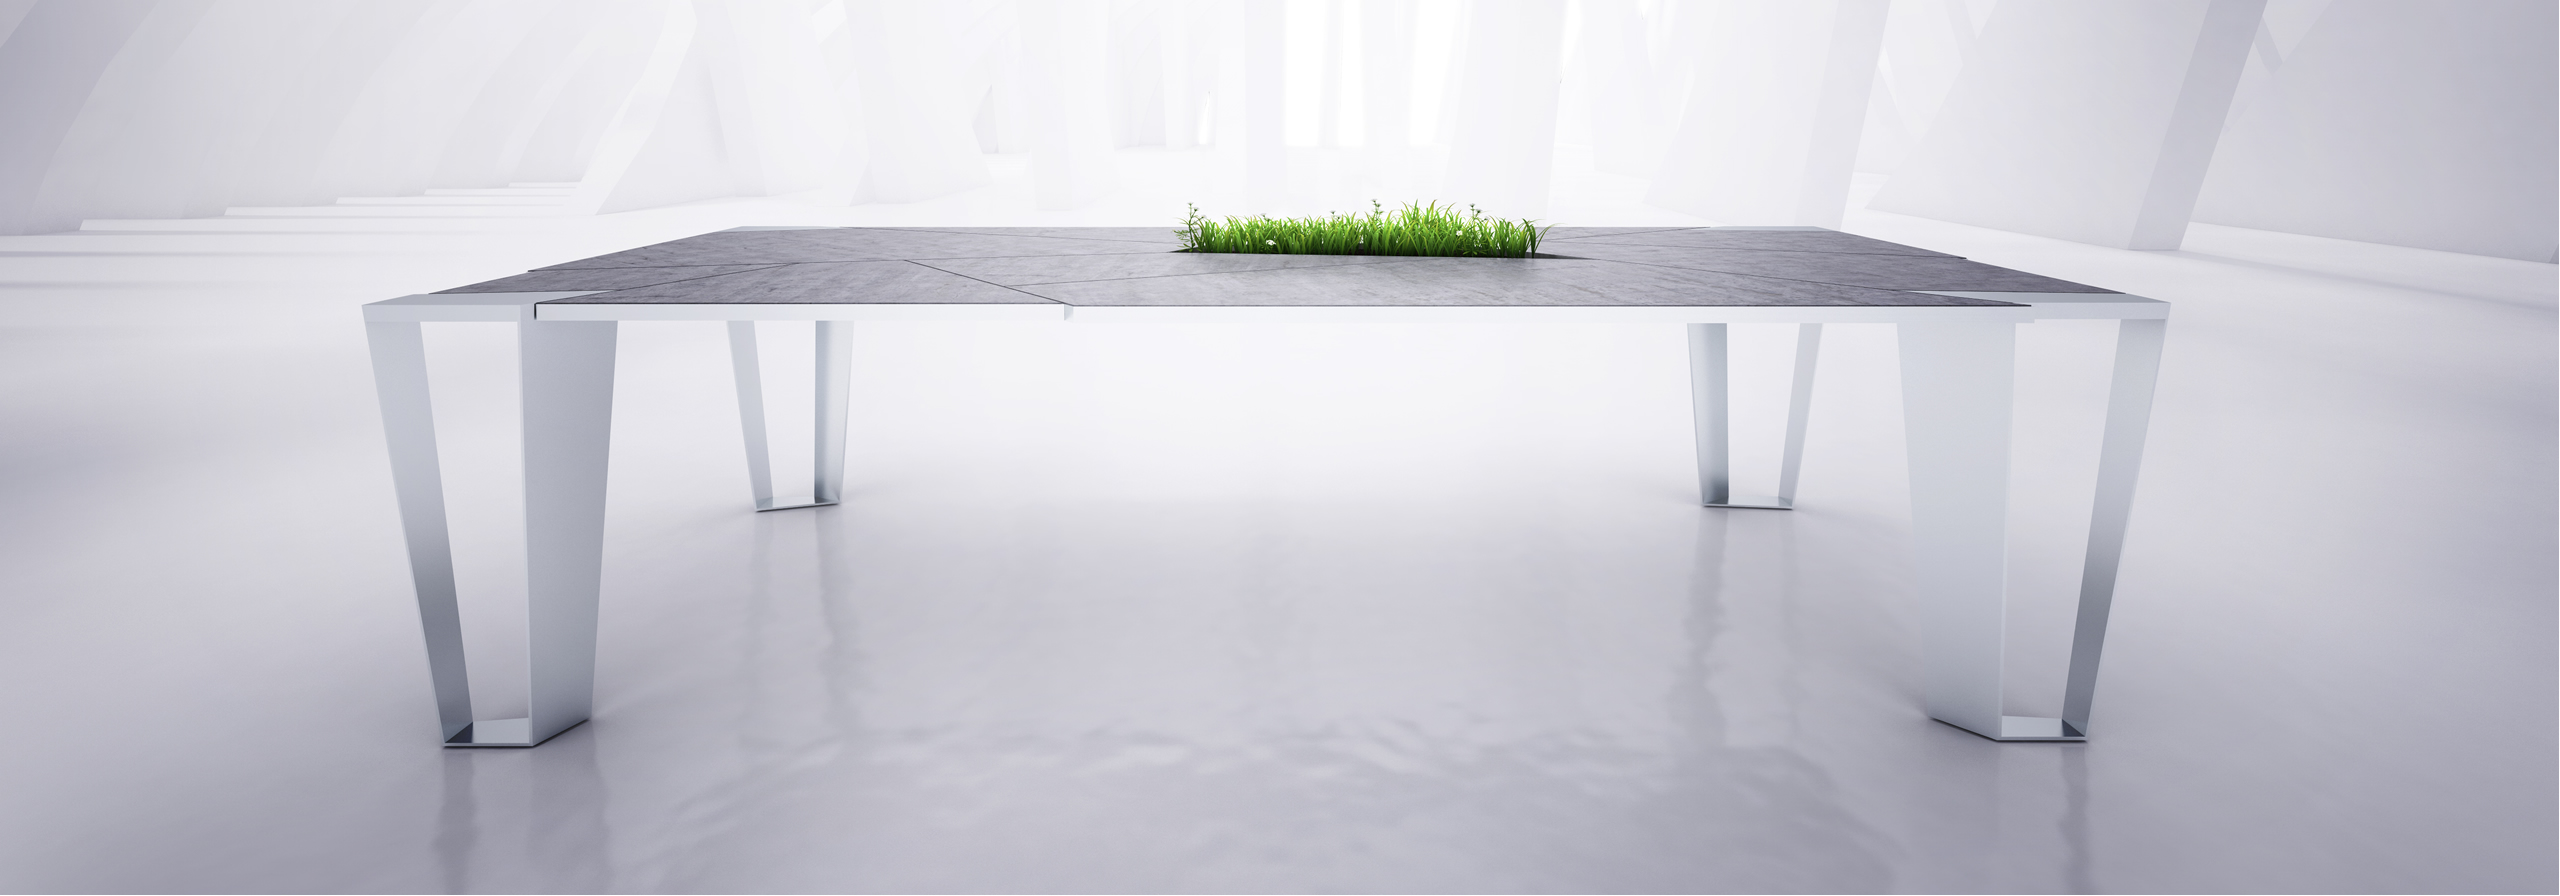 whocares_design_sacac_concretetable_v3_renderings_002